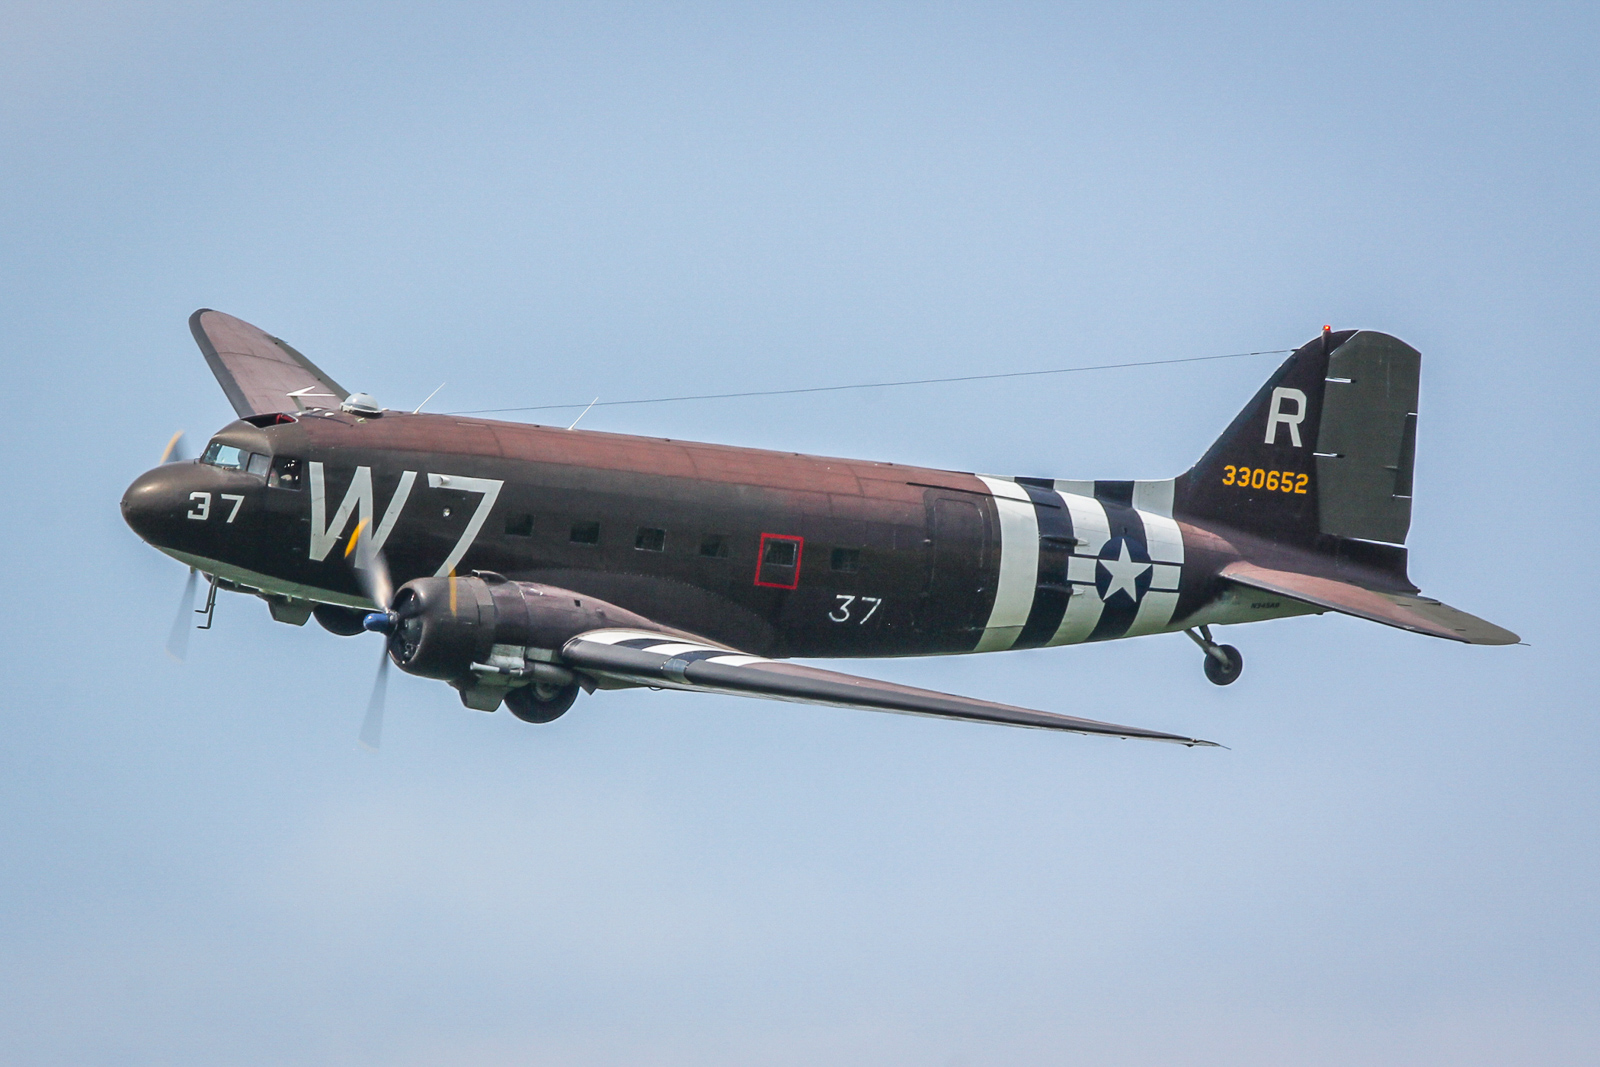 The National Warplane Museum's C-47 'Whiskey 7' flown by Chris Polhemus and John Lindsay. (photo by Tom Pawlesh)